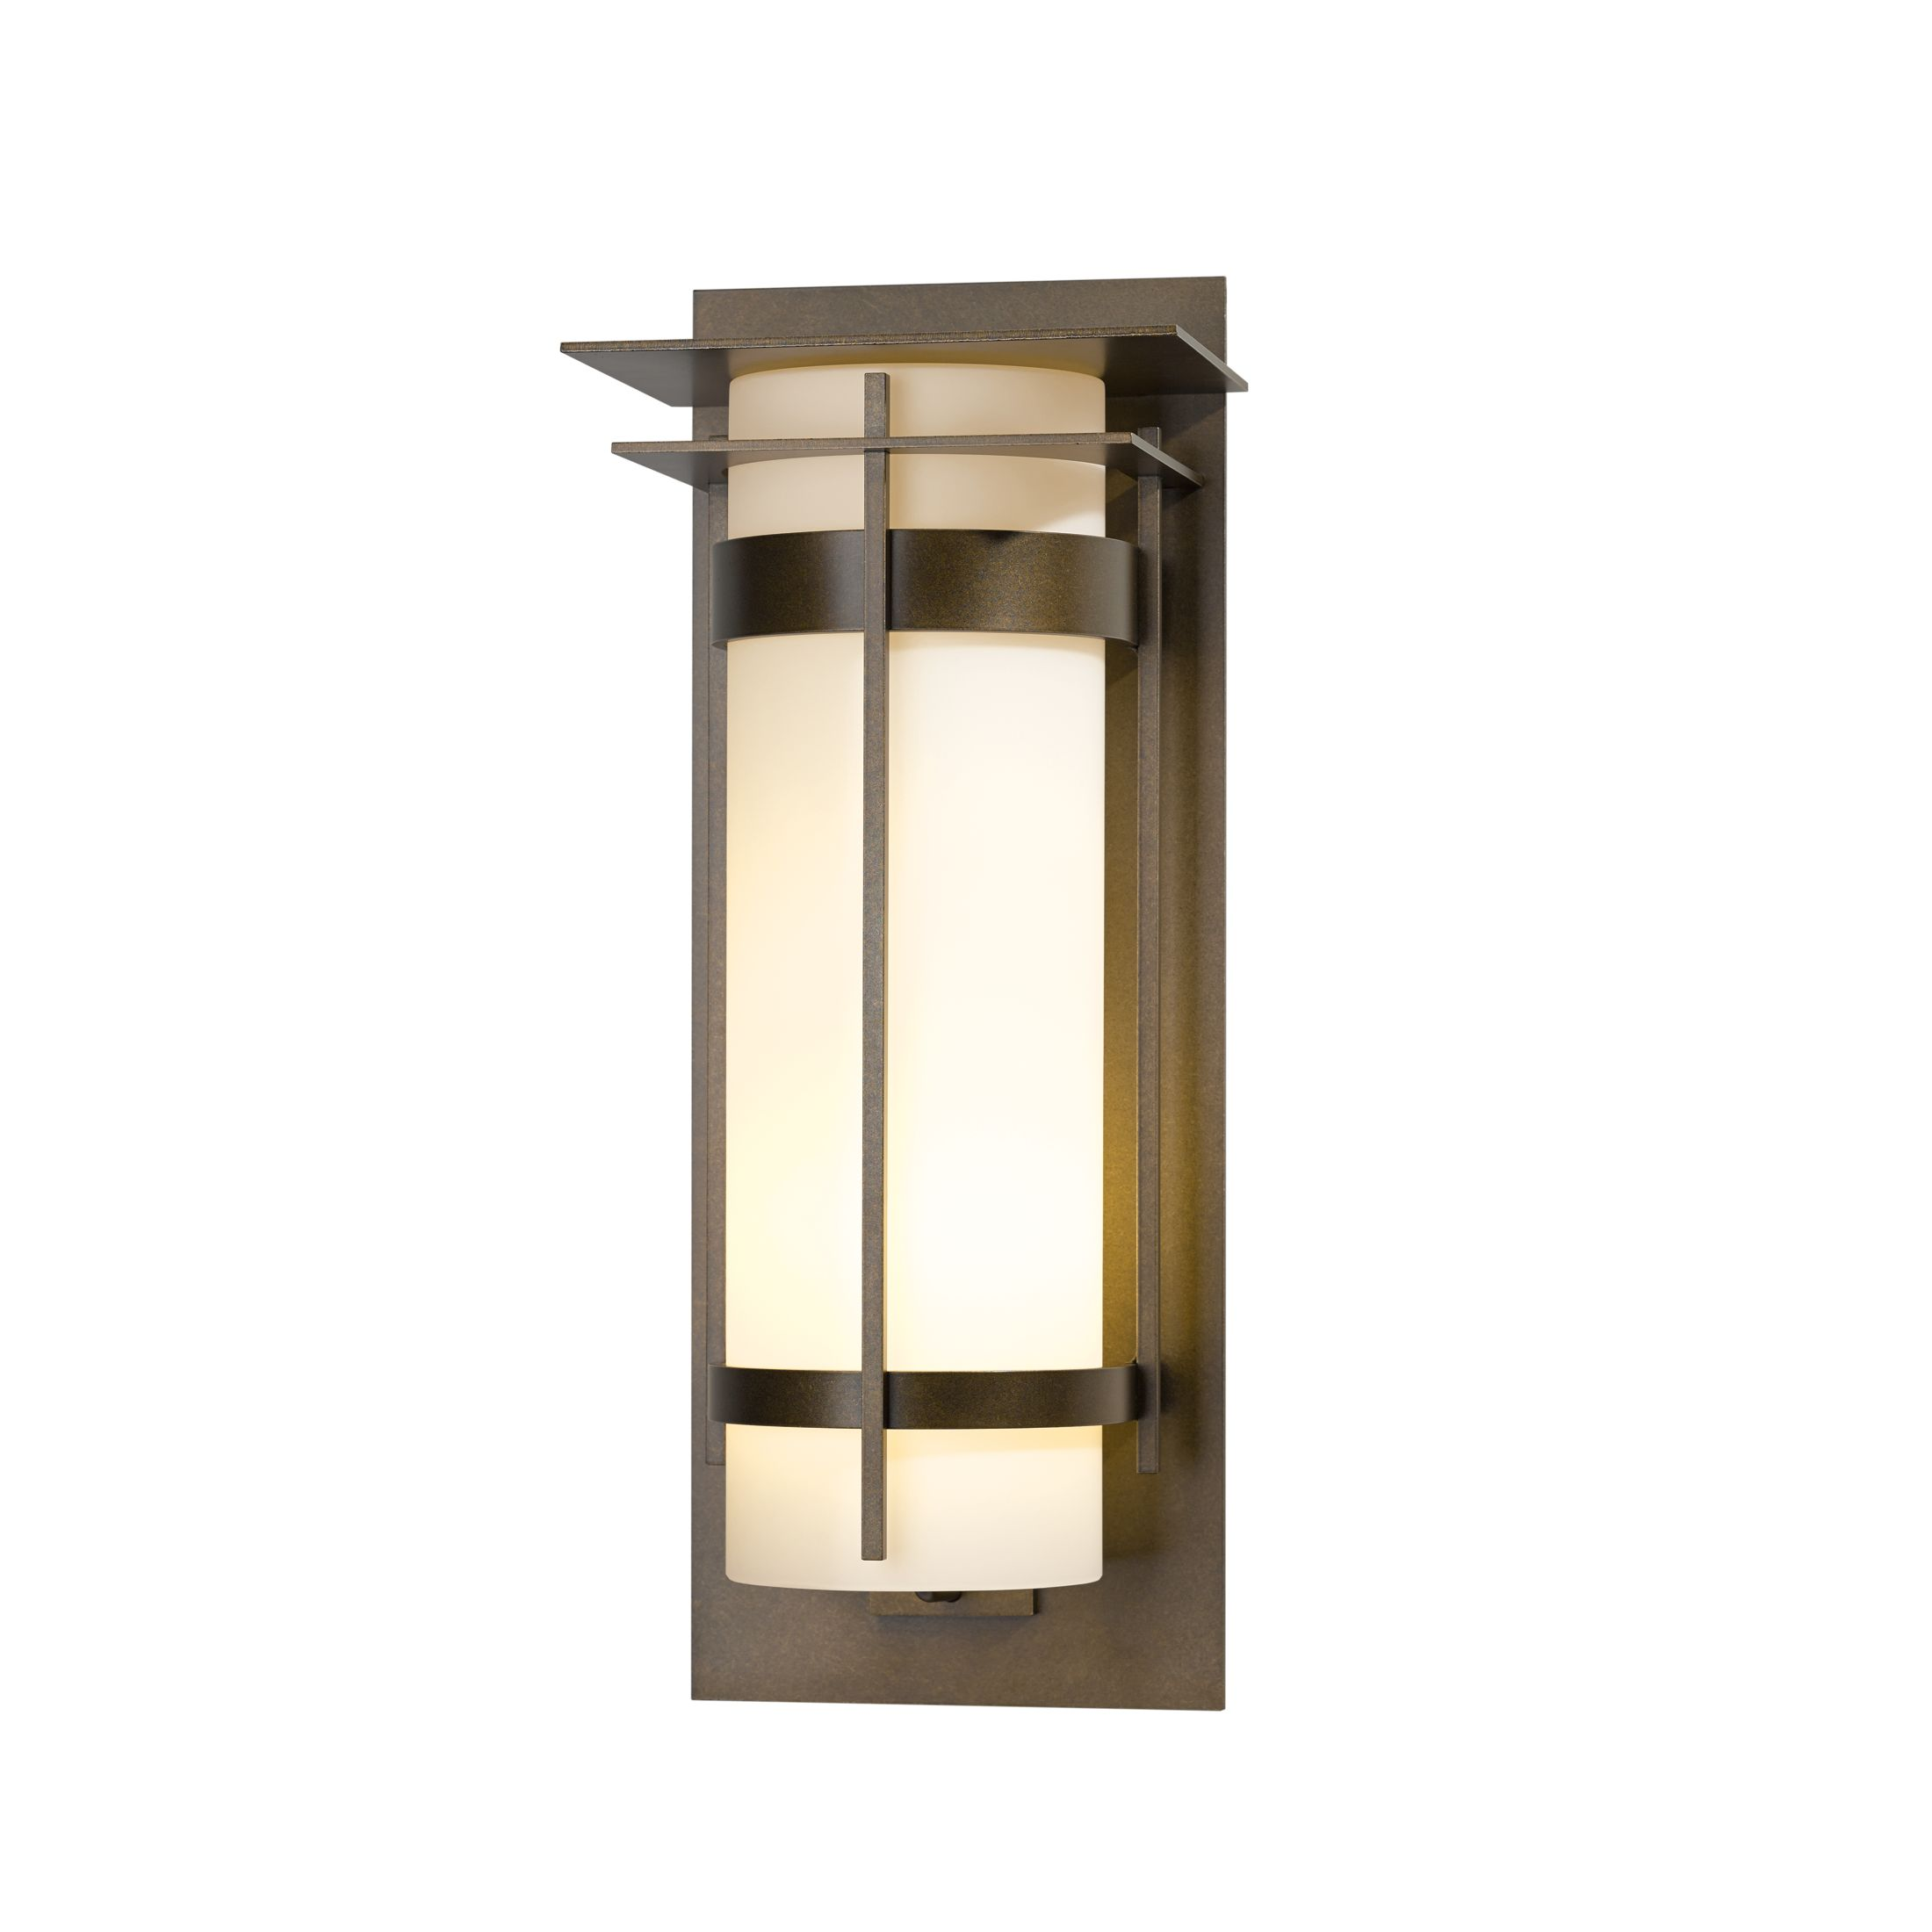 Thumbnail for Banded with Top Plate Extra Large Outdoor Sconce